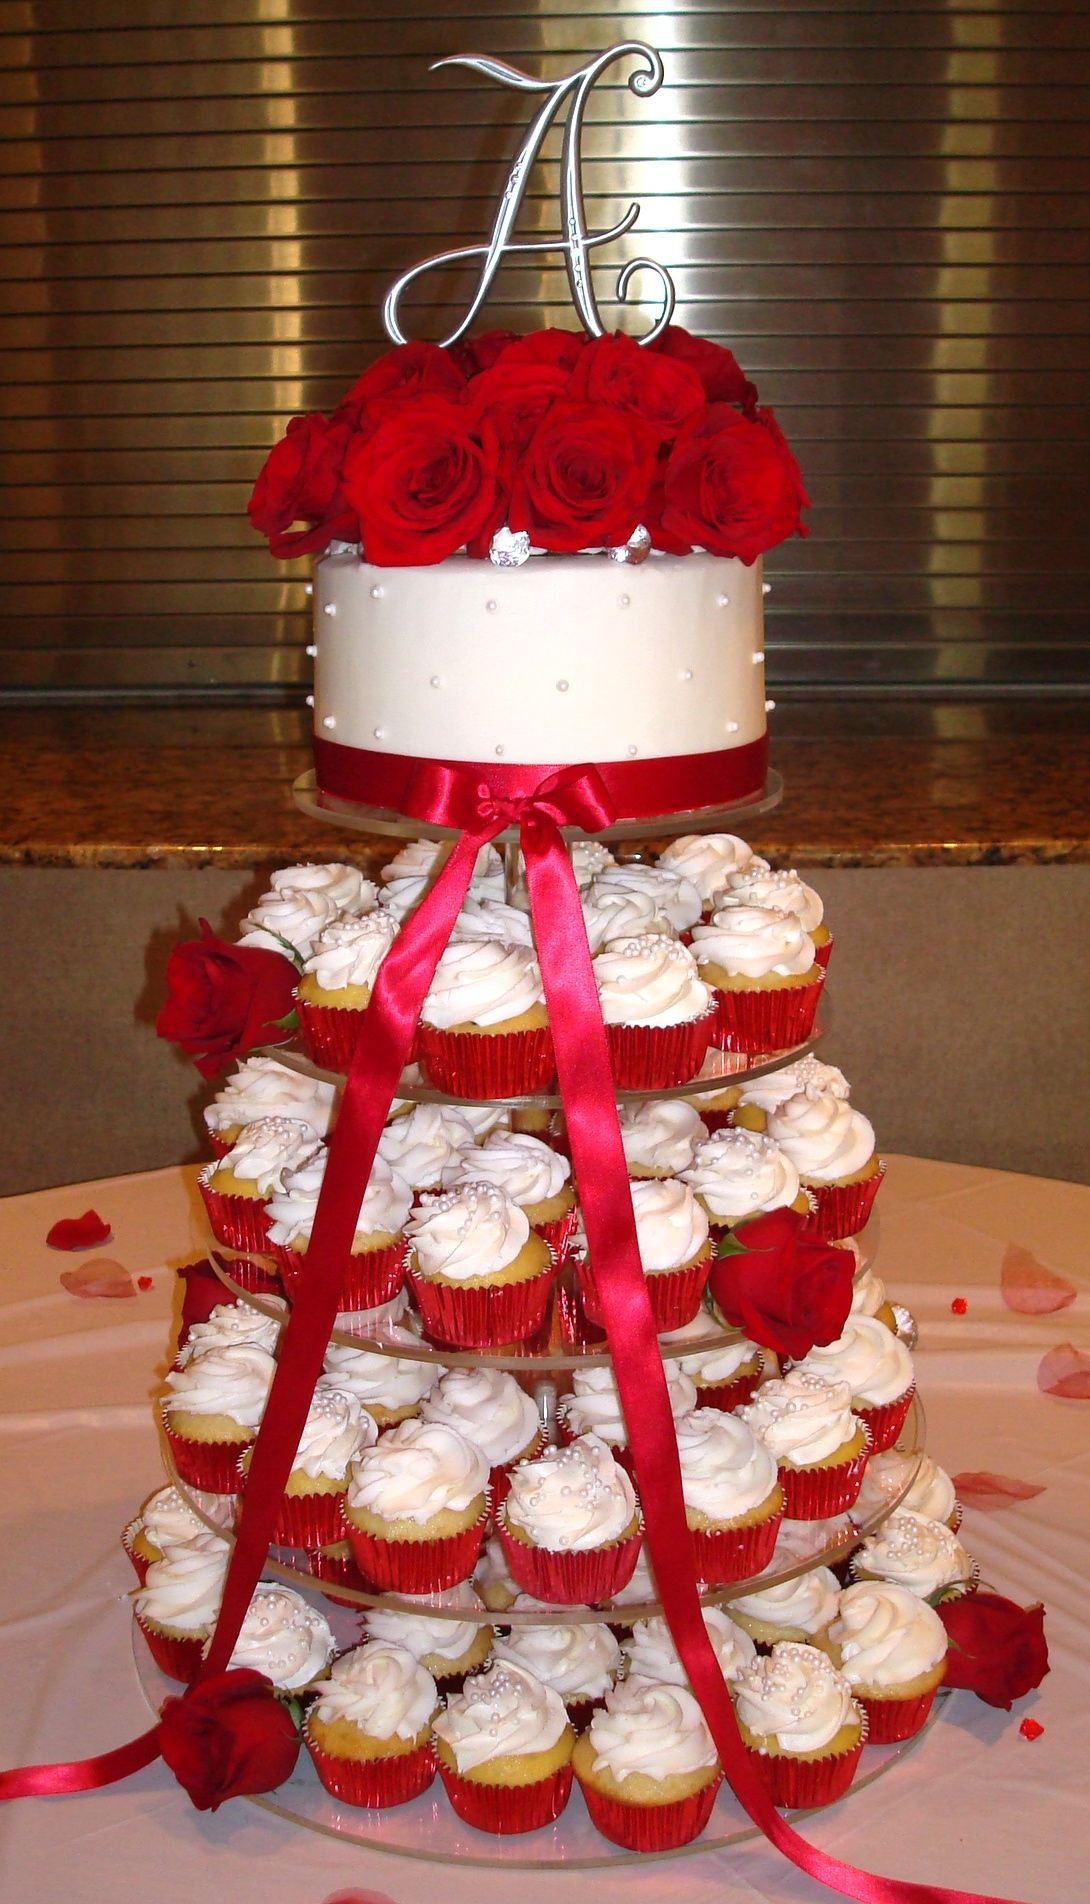 Wedding Cupcake Tower White With Red Roses On Top And